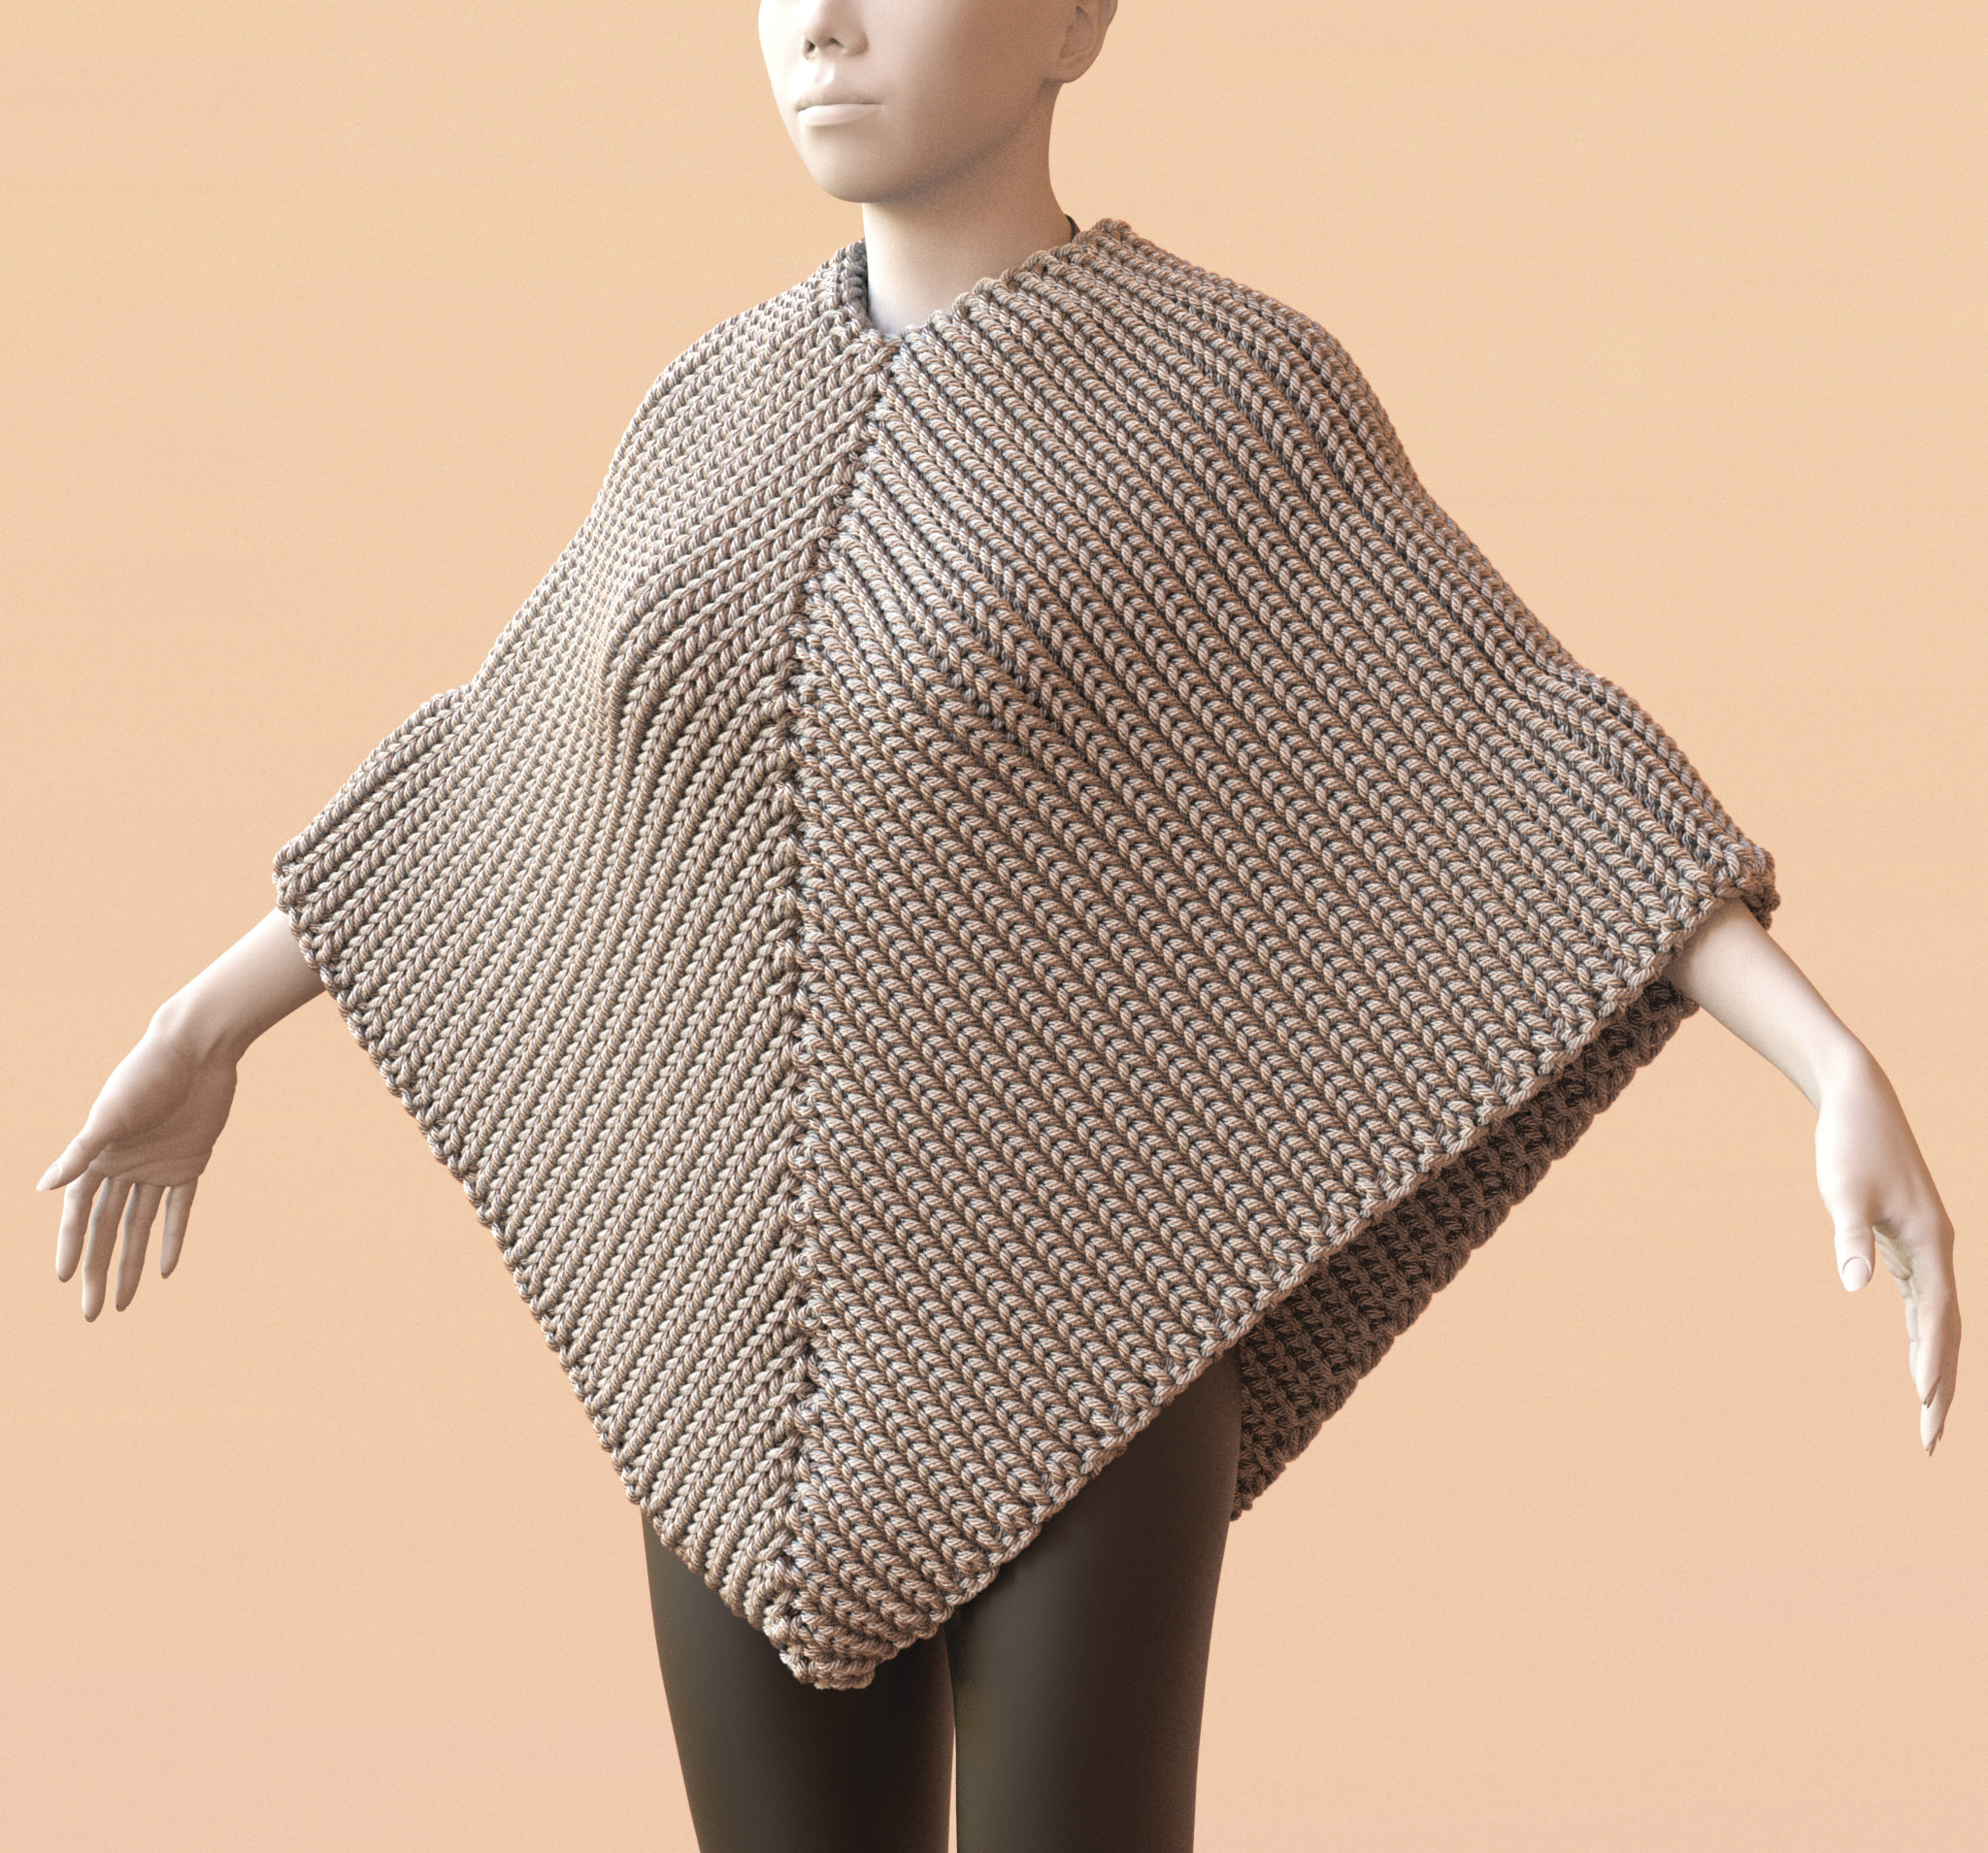 Knit Poncho Patterns : poncho   Mitsuba Development Blog